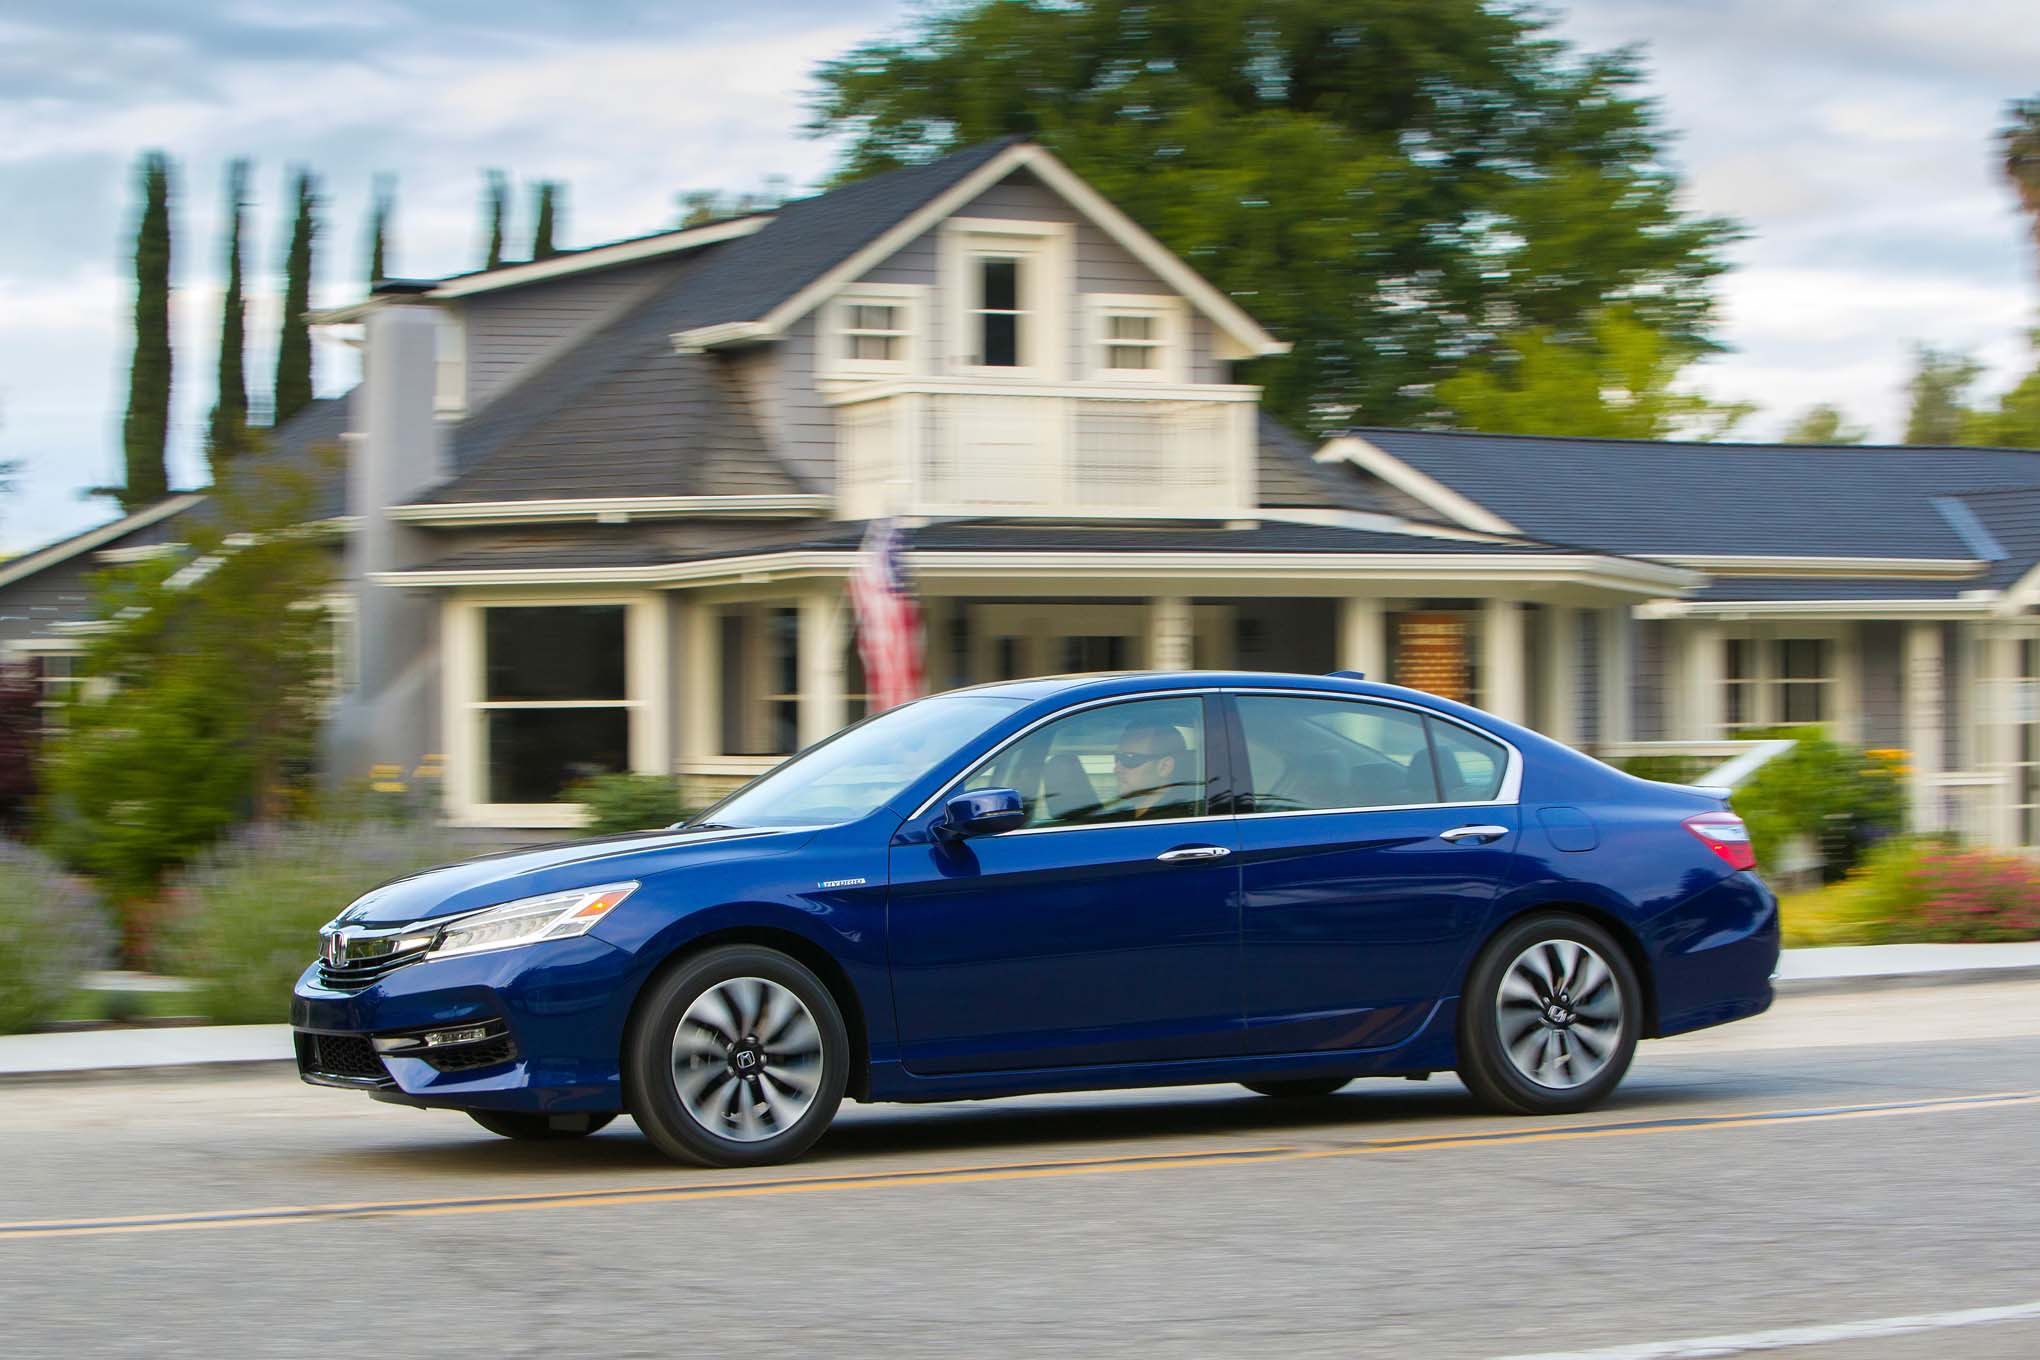 Refreshed Honda Accord Hybrid Debuts Automobile Magazine - 2017 honda accord hybrid invoice price